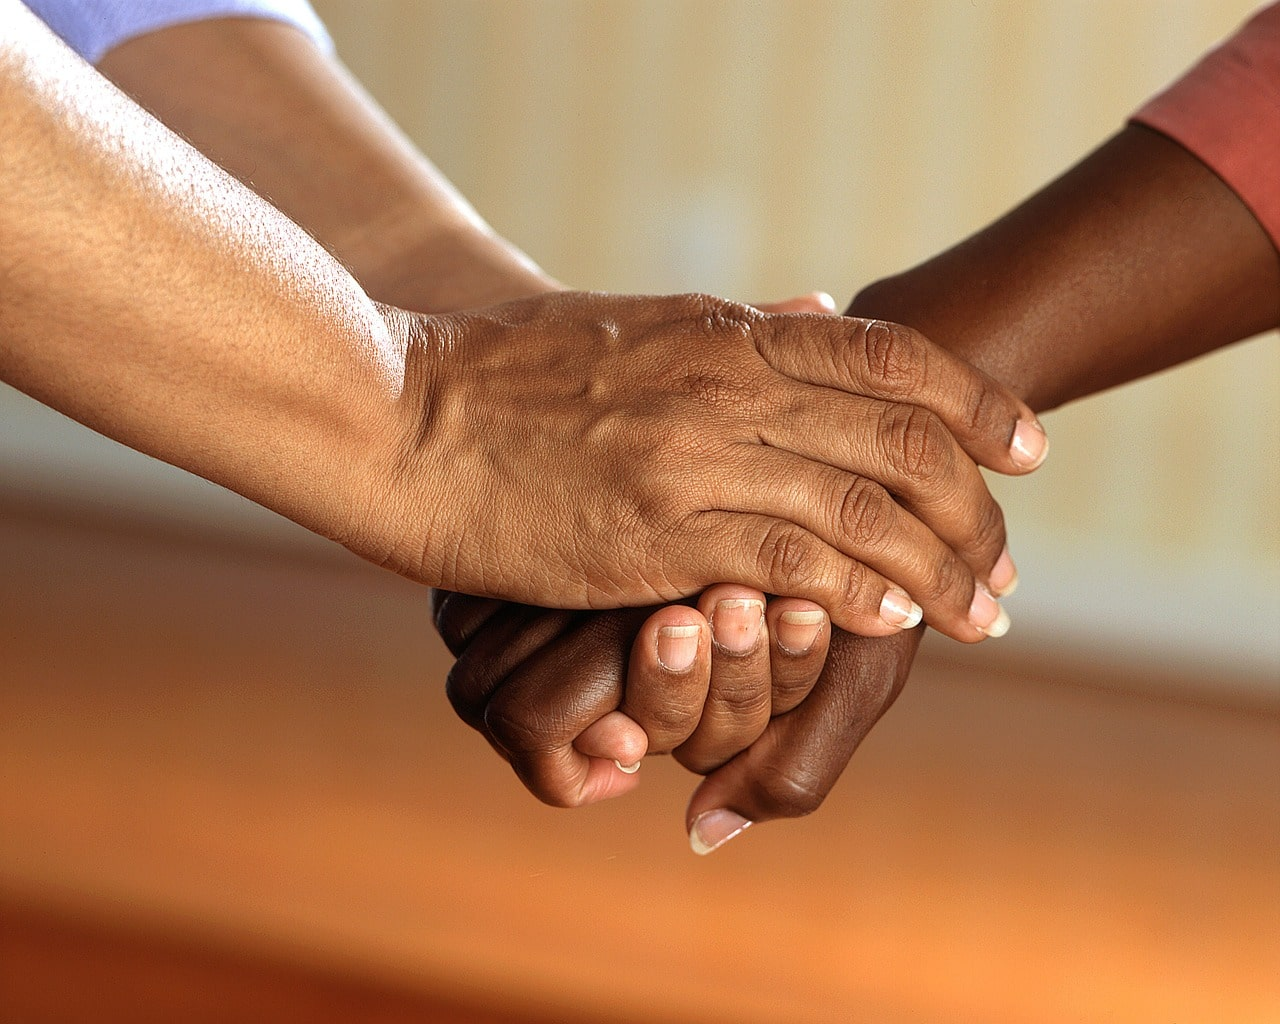 Two peoples hands are clasped together in greeting - how to start a courageous conversation